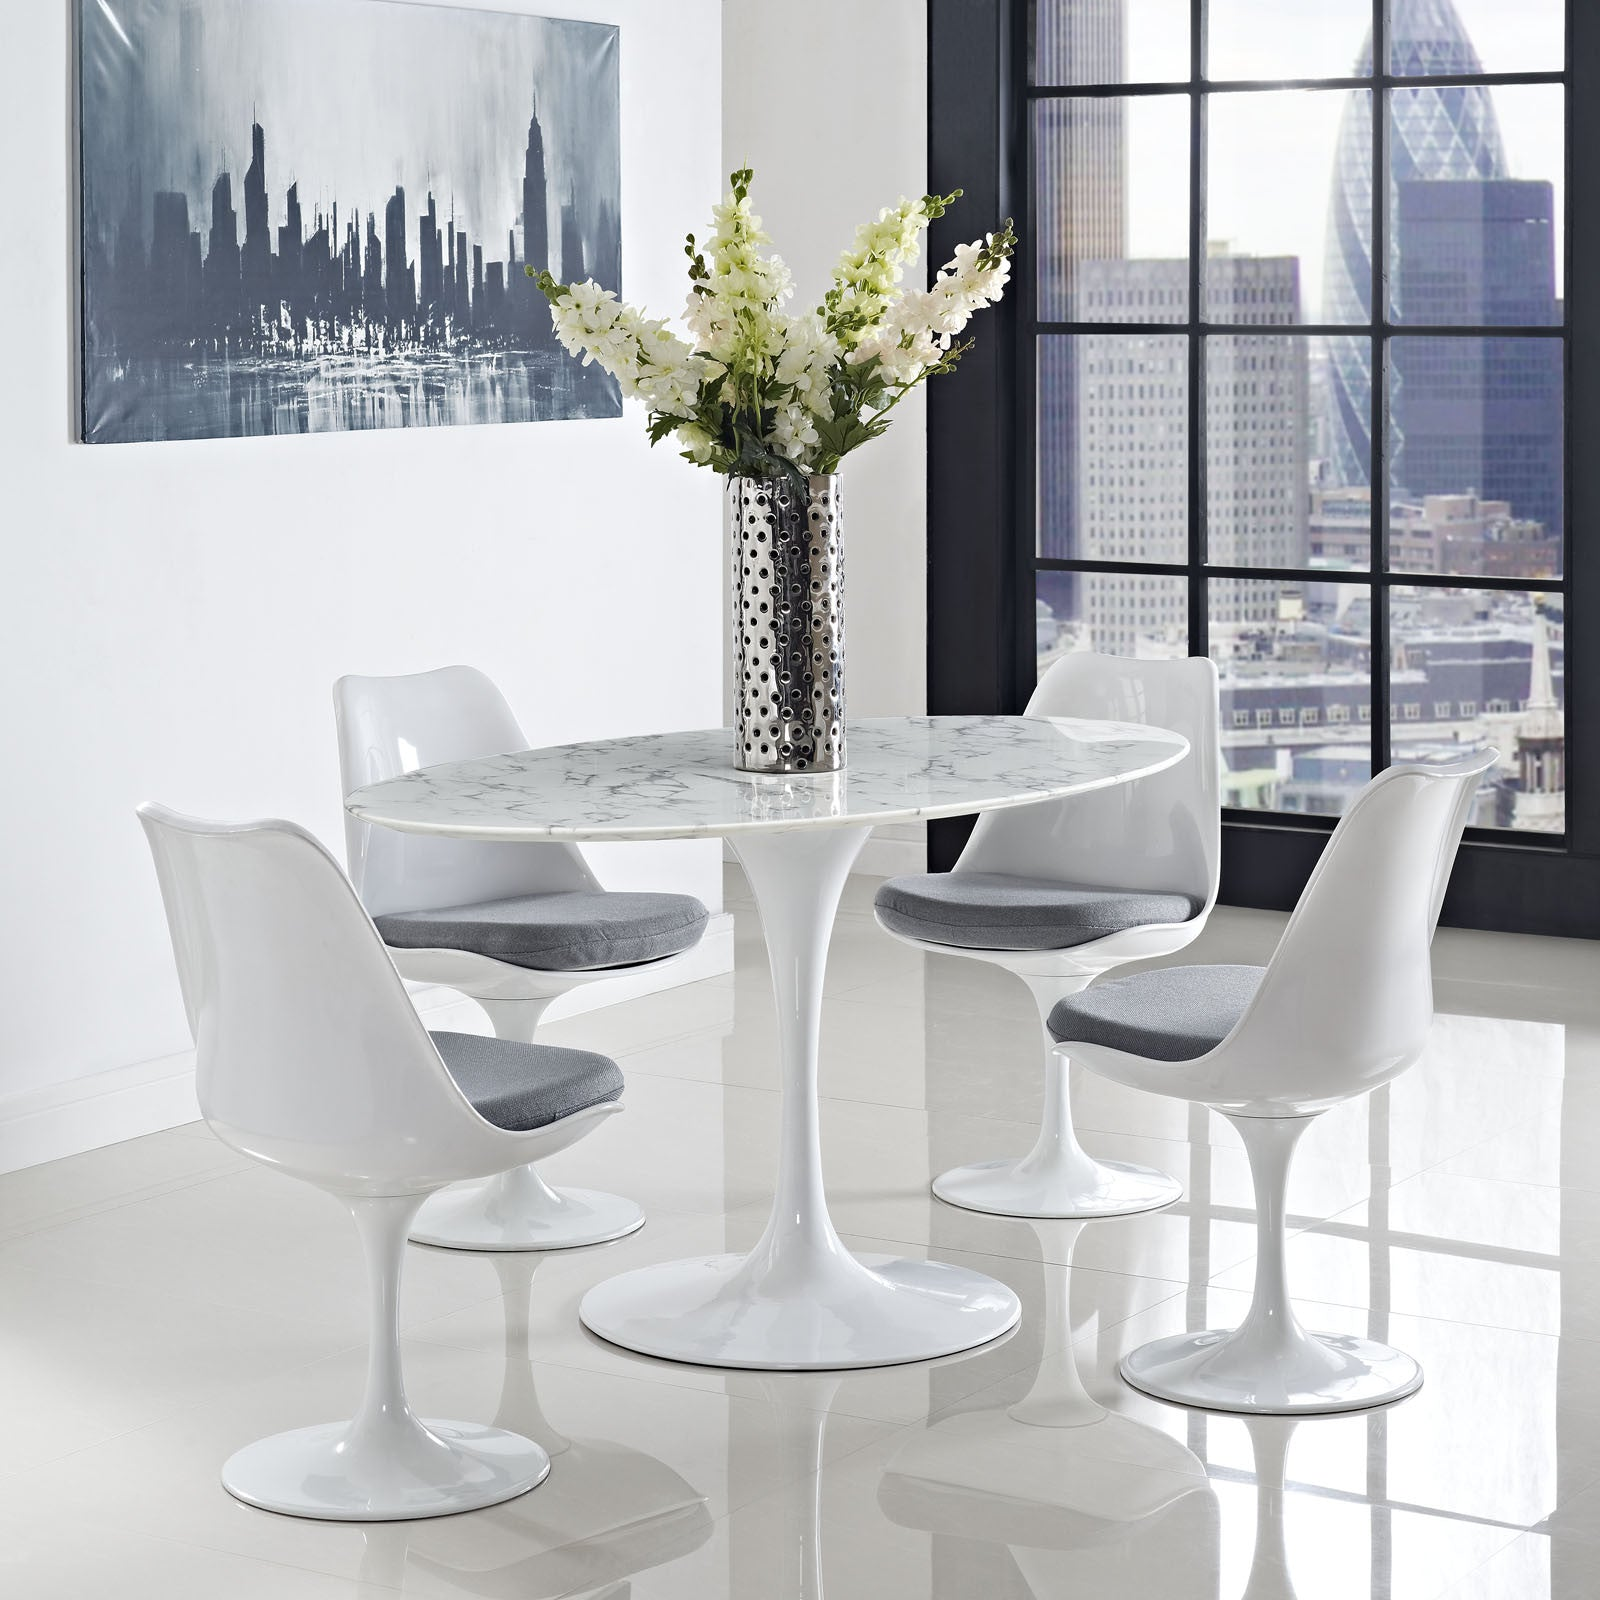 Marble Tulip Tables Eero Saarinen Best Reproduction Emfurn